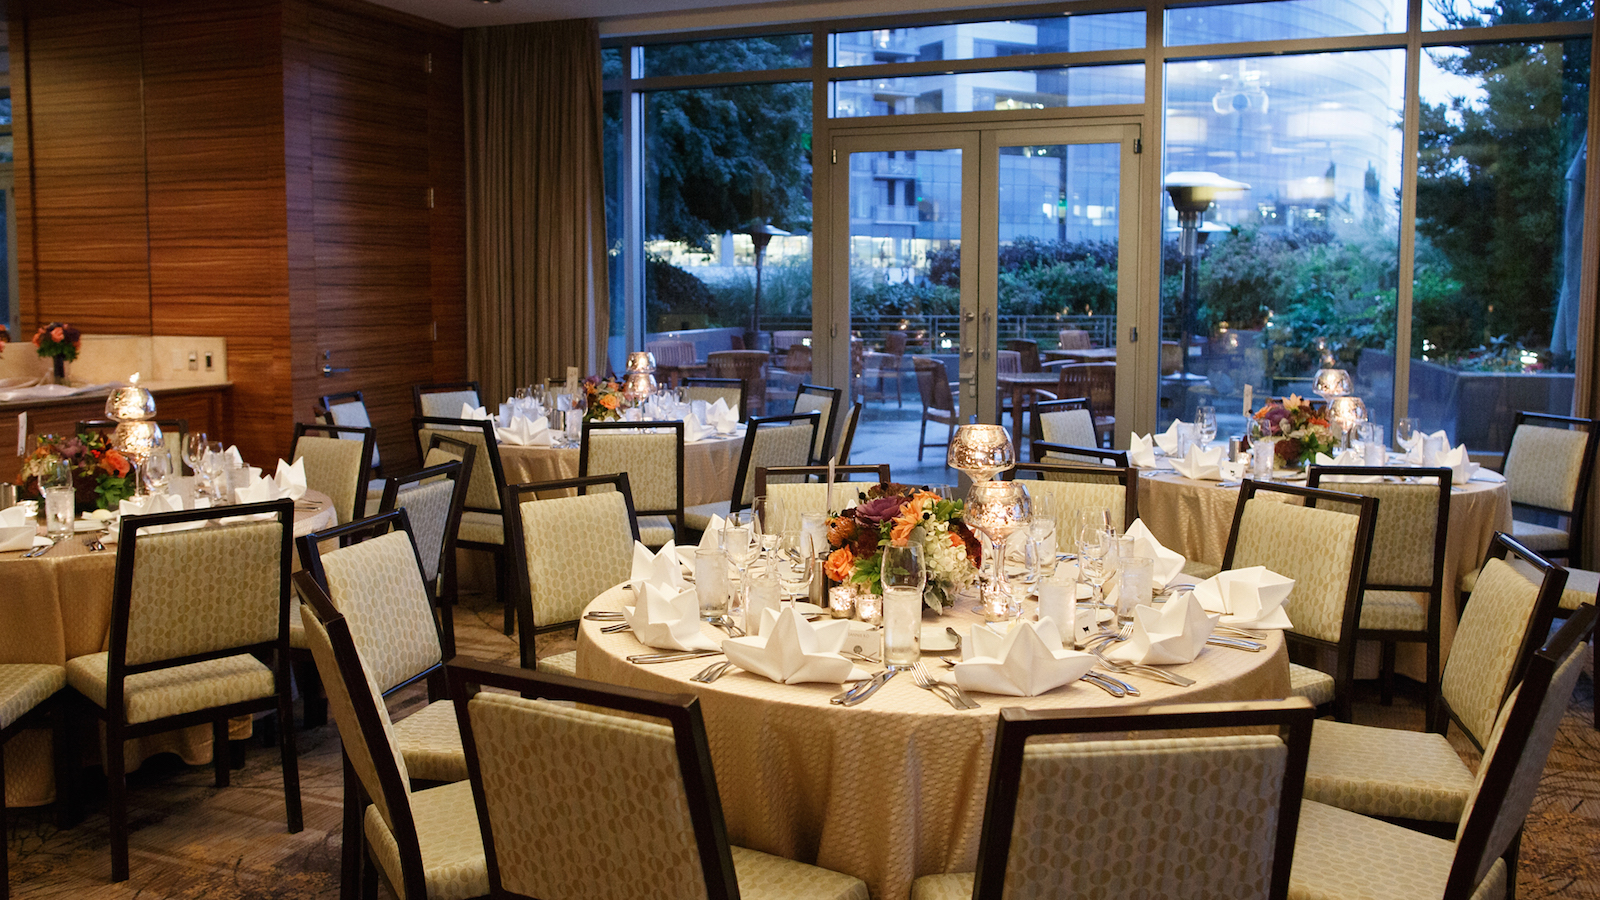 Lakefront room at Pan Pacific Seattle for upscale event with round tables with settings and centerpiece flower arrangements